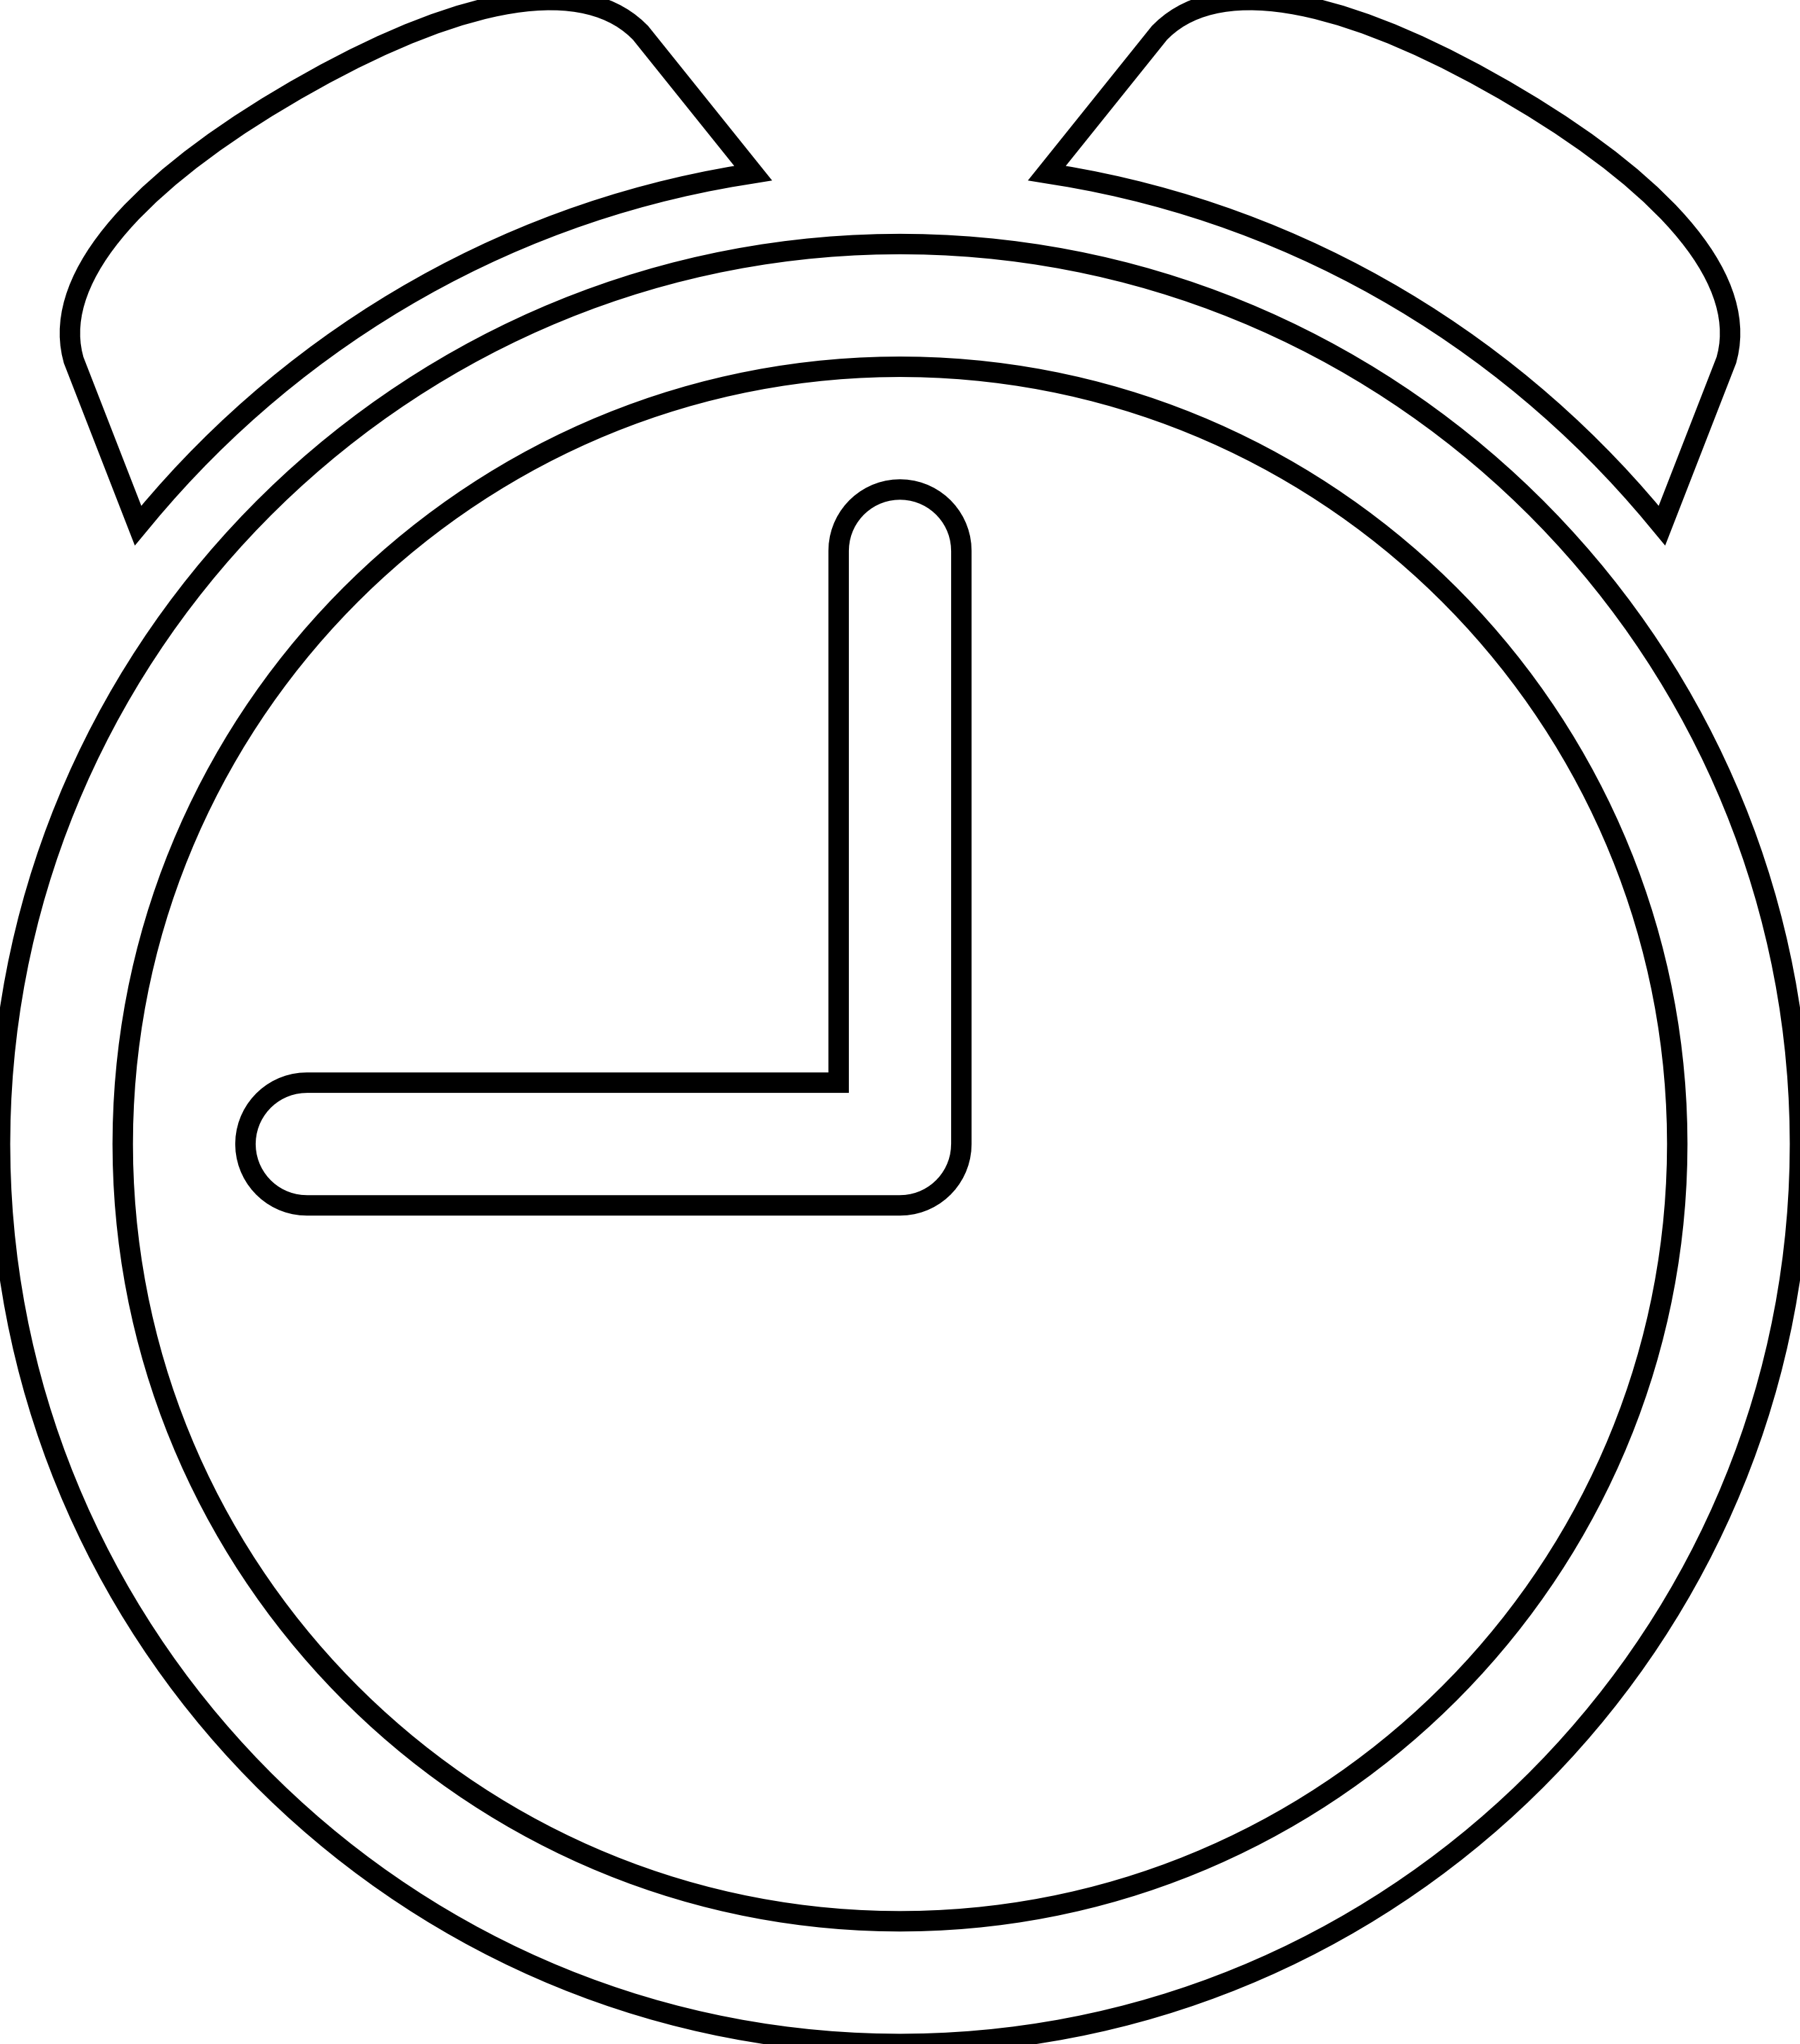 Digital Clock Clipart Black And White | Clipart Panda ...